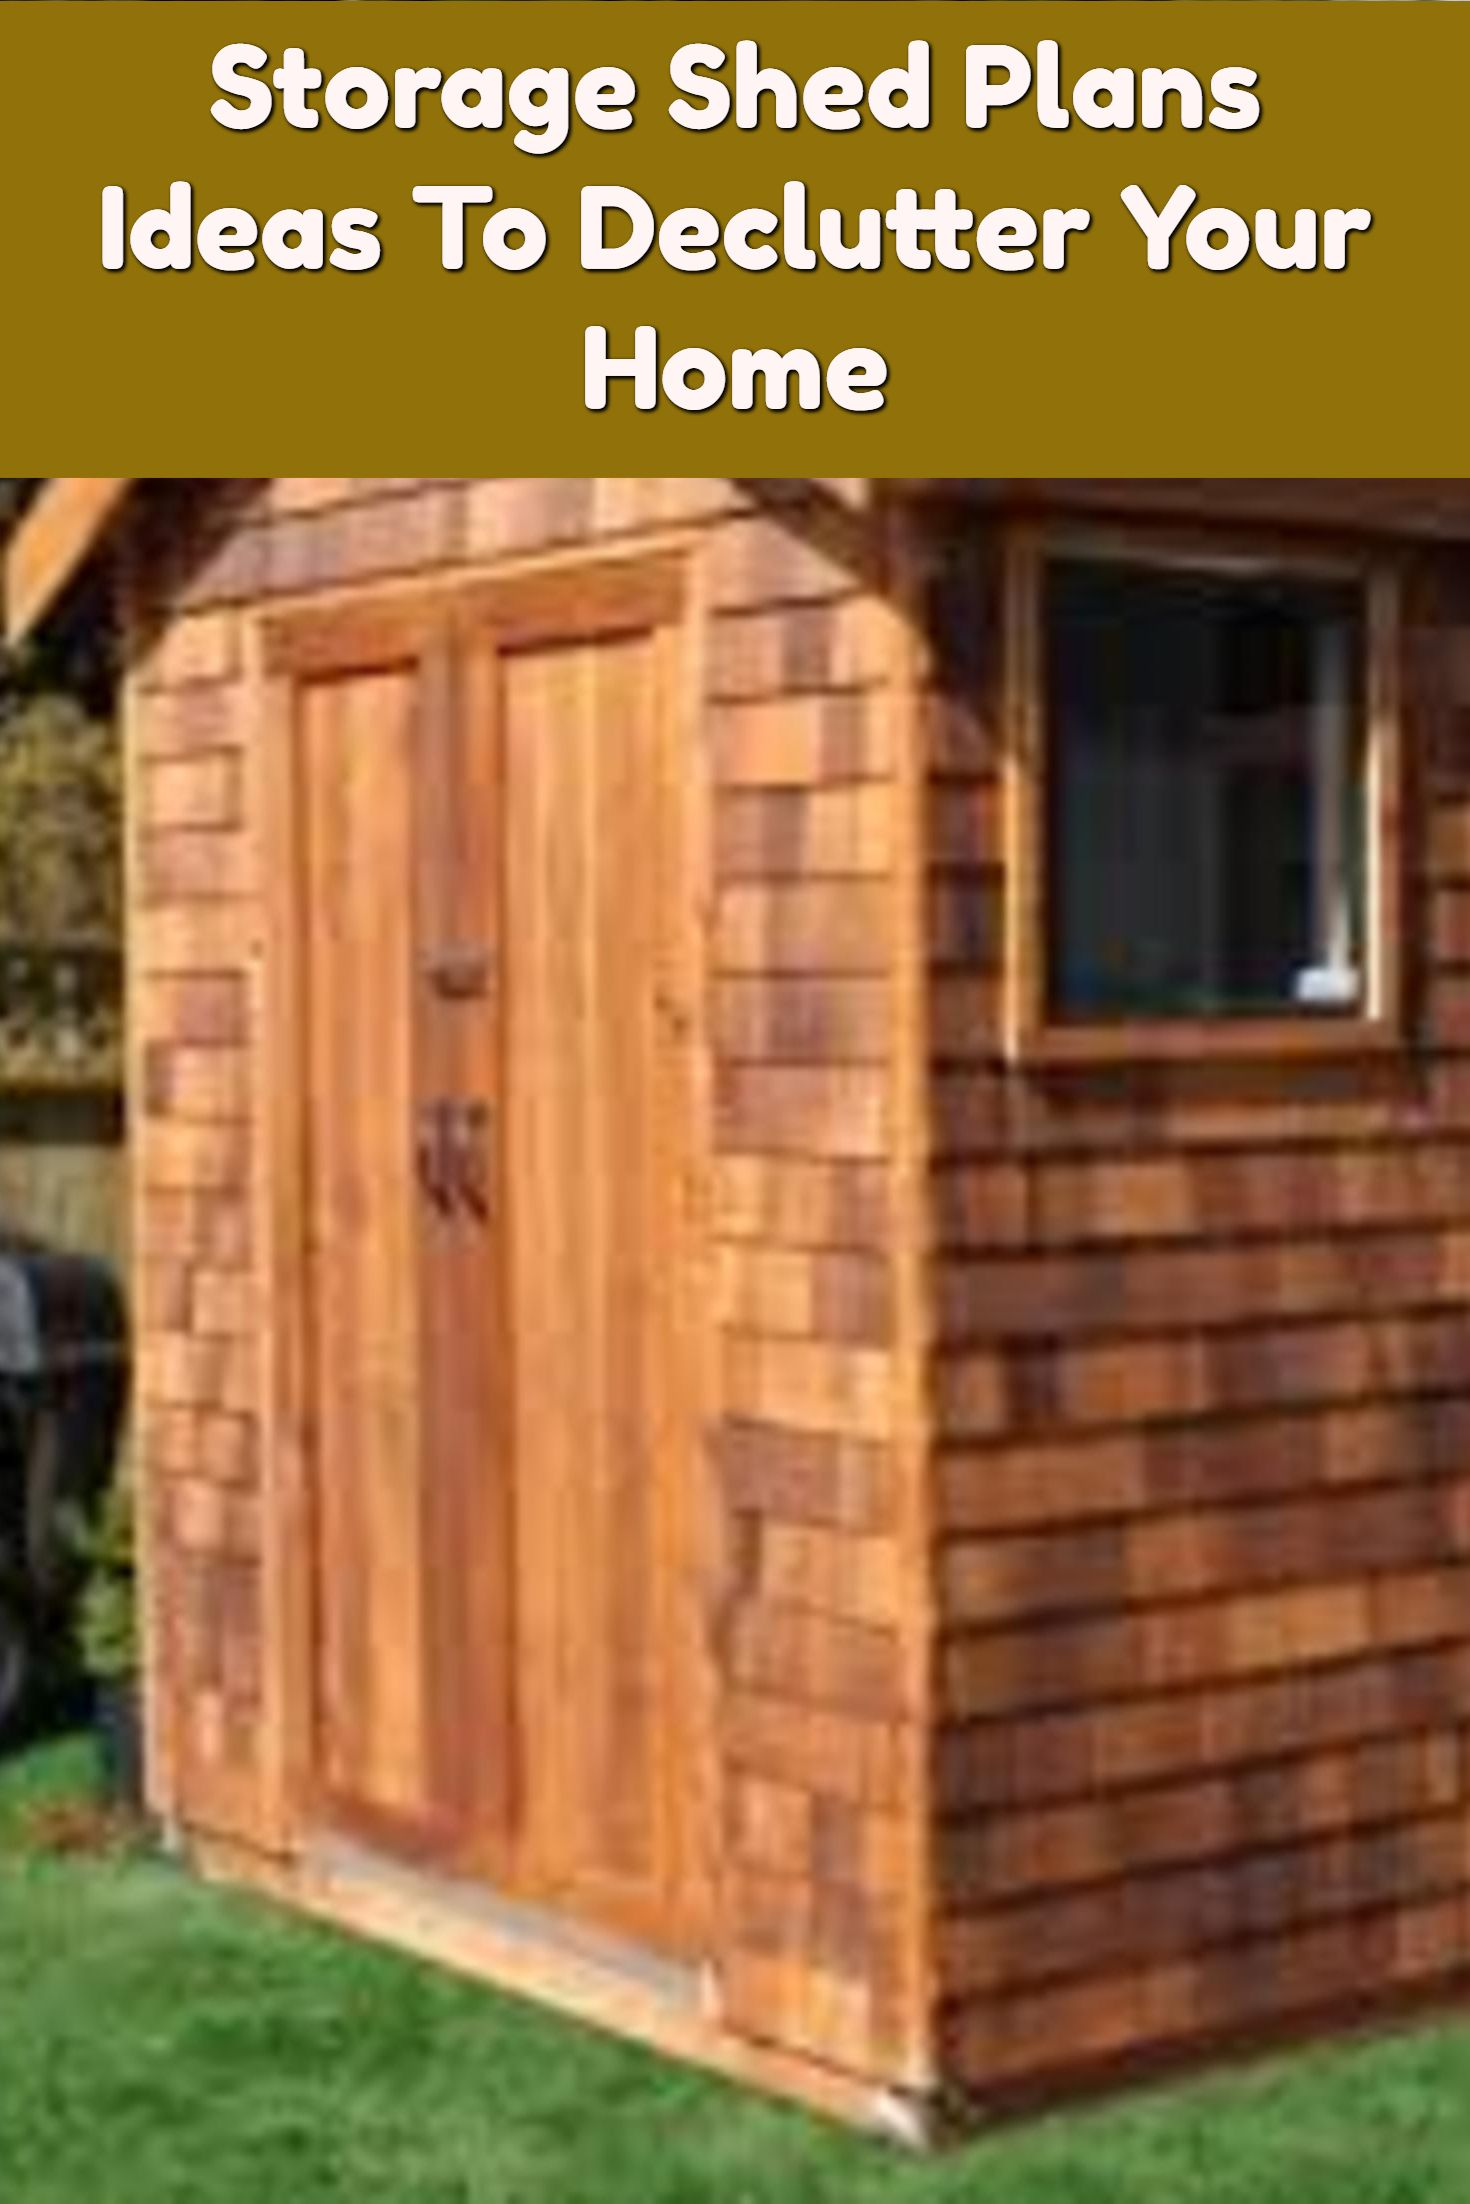 How To Use Storage Shed Plans To